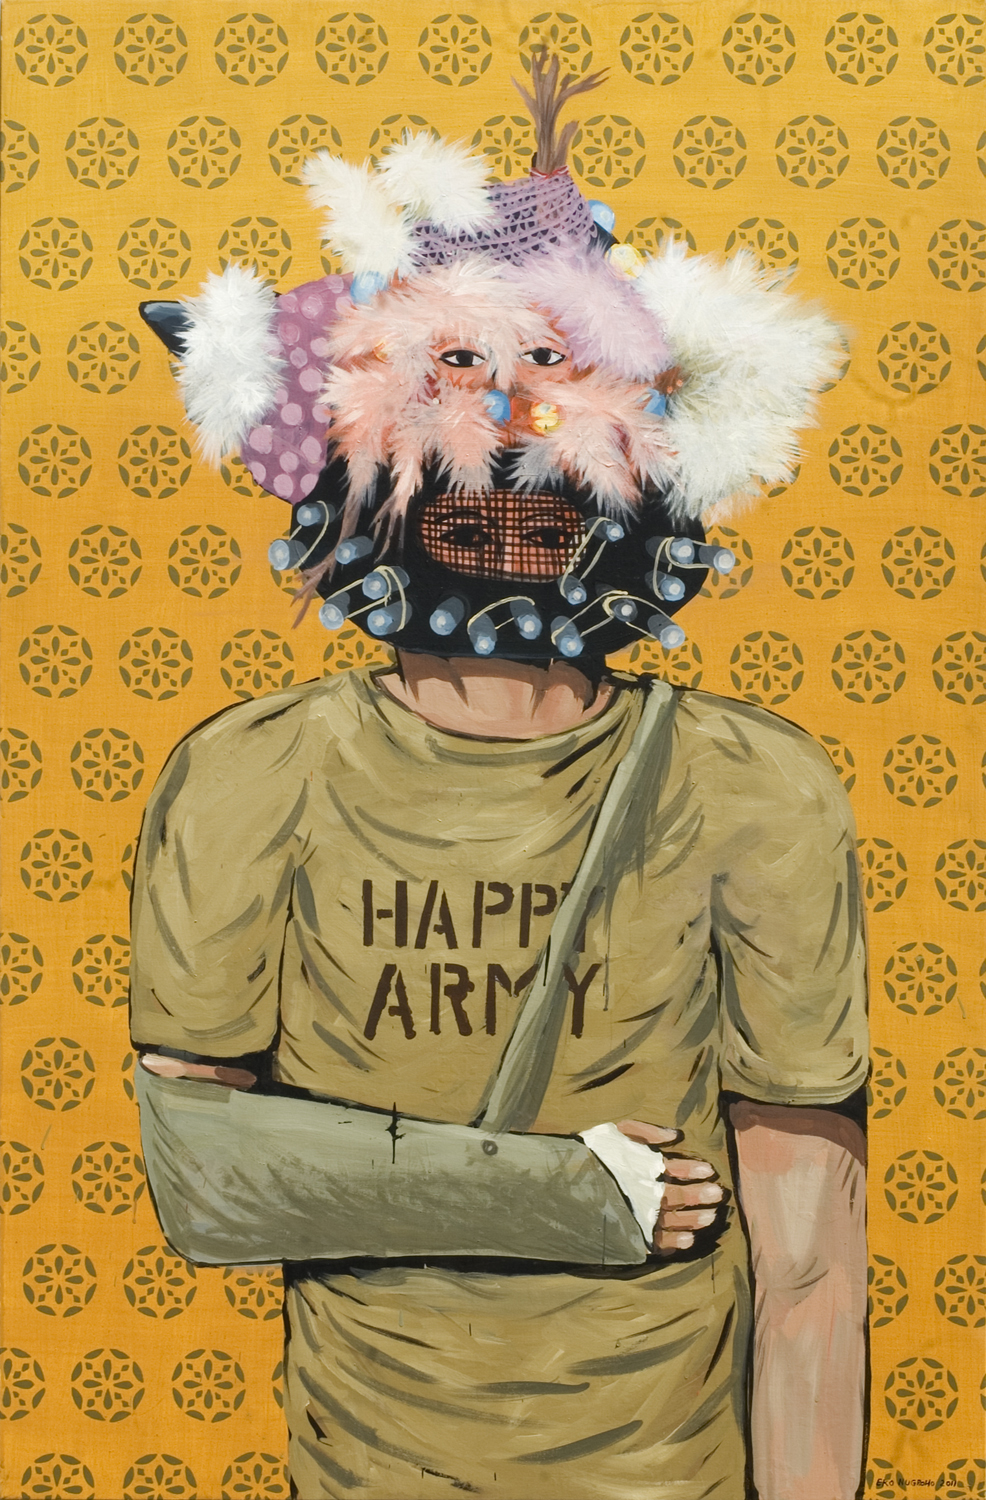 Eko Nugroho   Happy Army , 2011 acrylic on canvas 59.06 x 39.37 inches 150 x 100 cm